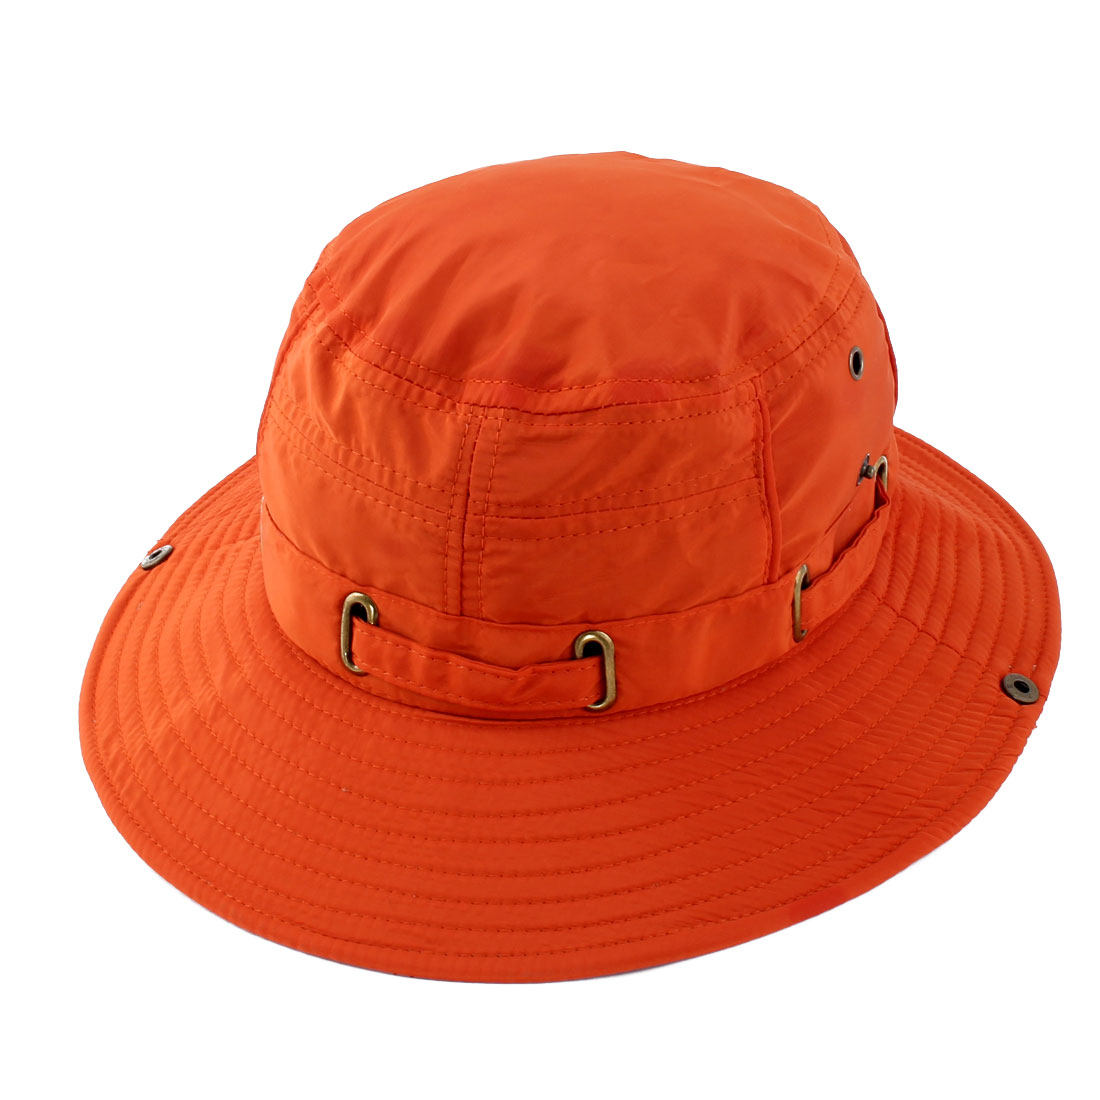 Fisherman Cotton Blends Outdoor Sports Mountaineering Hunting Adjustable Strap Wide Brim Bucket Summer Cap Fishing Hat Orange